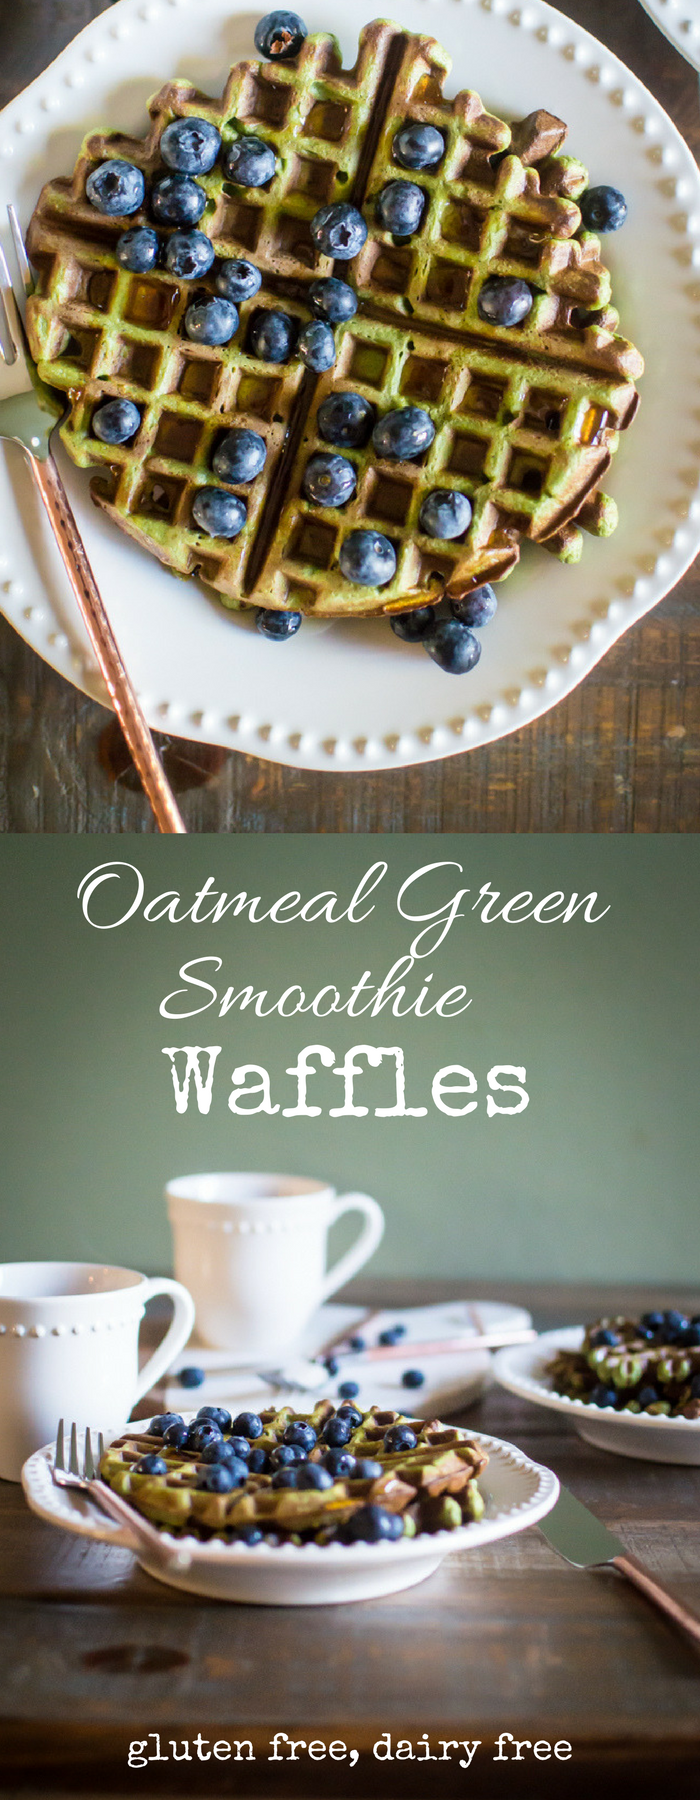 Oatmeal Green Smoothie Waffles